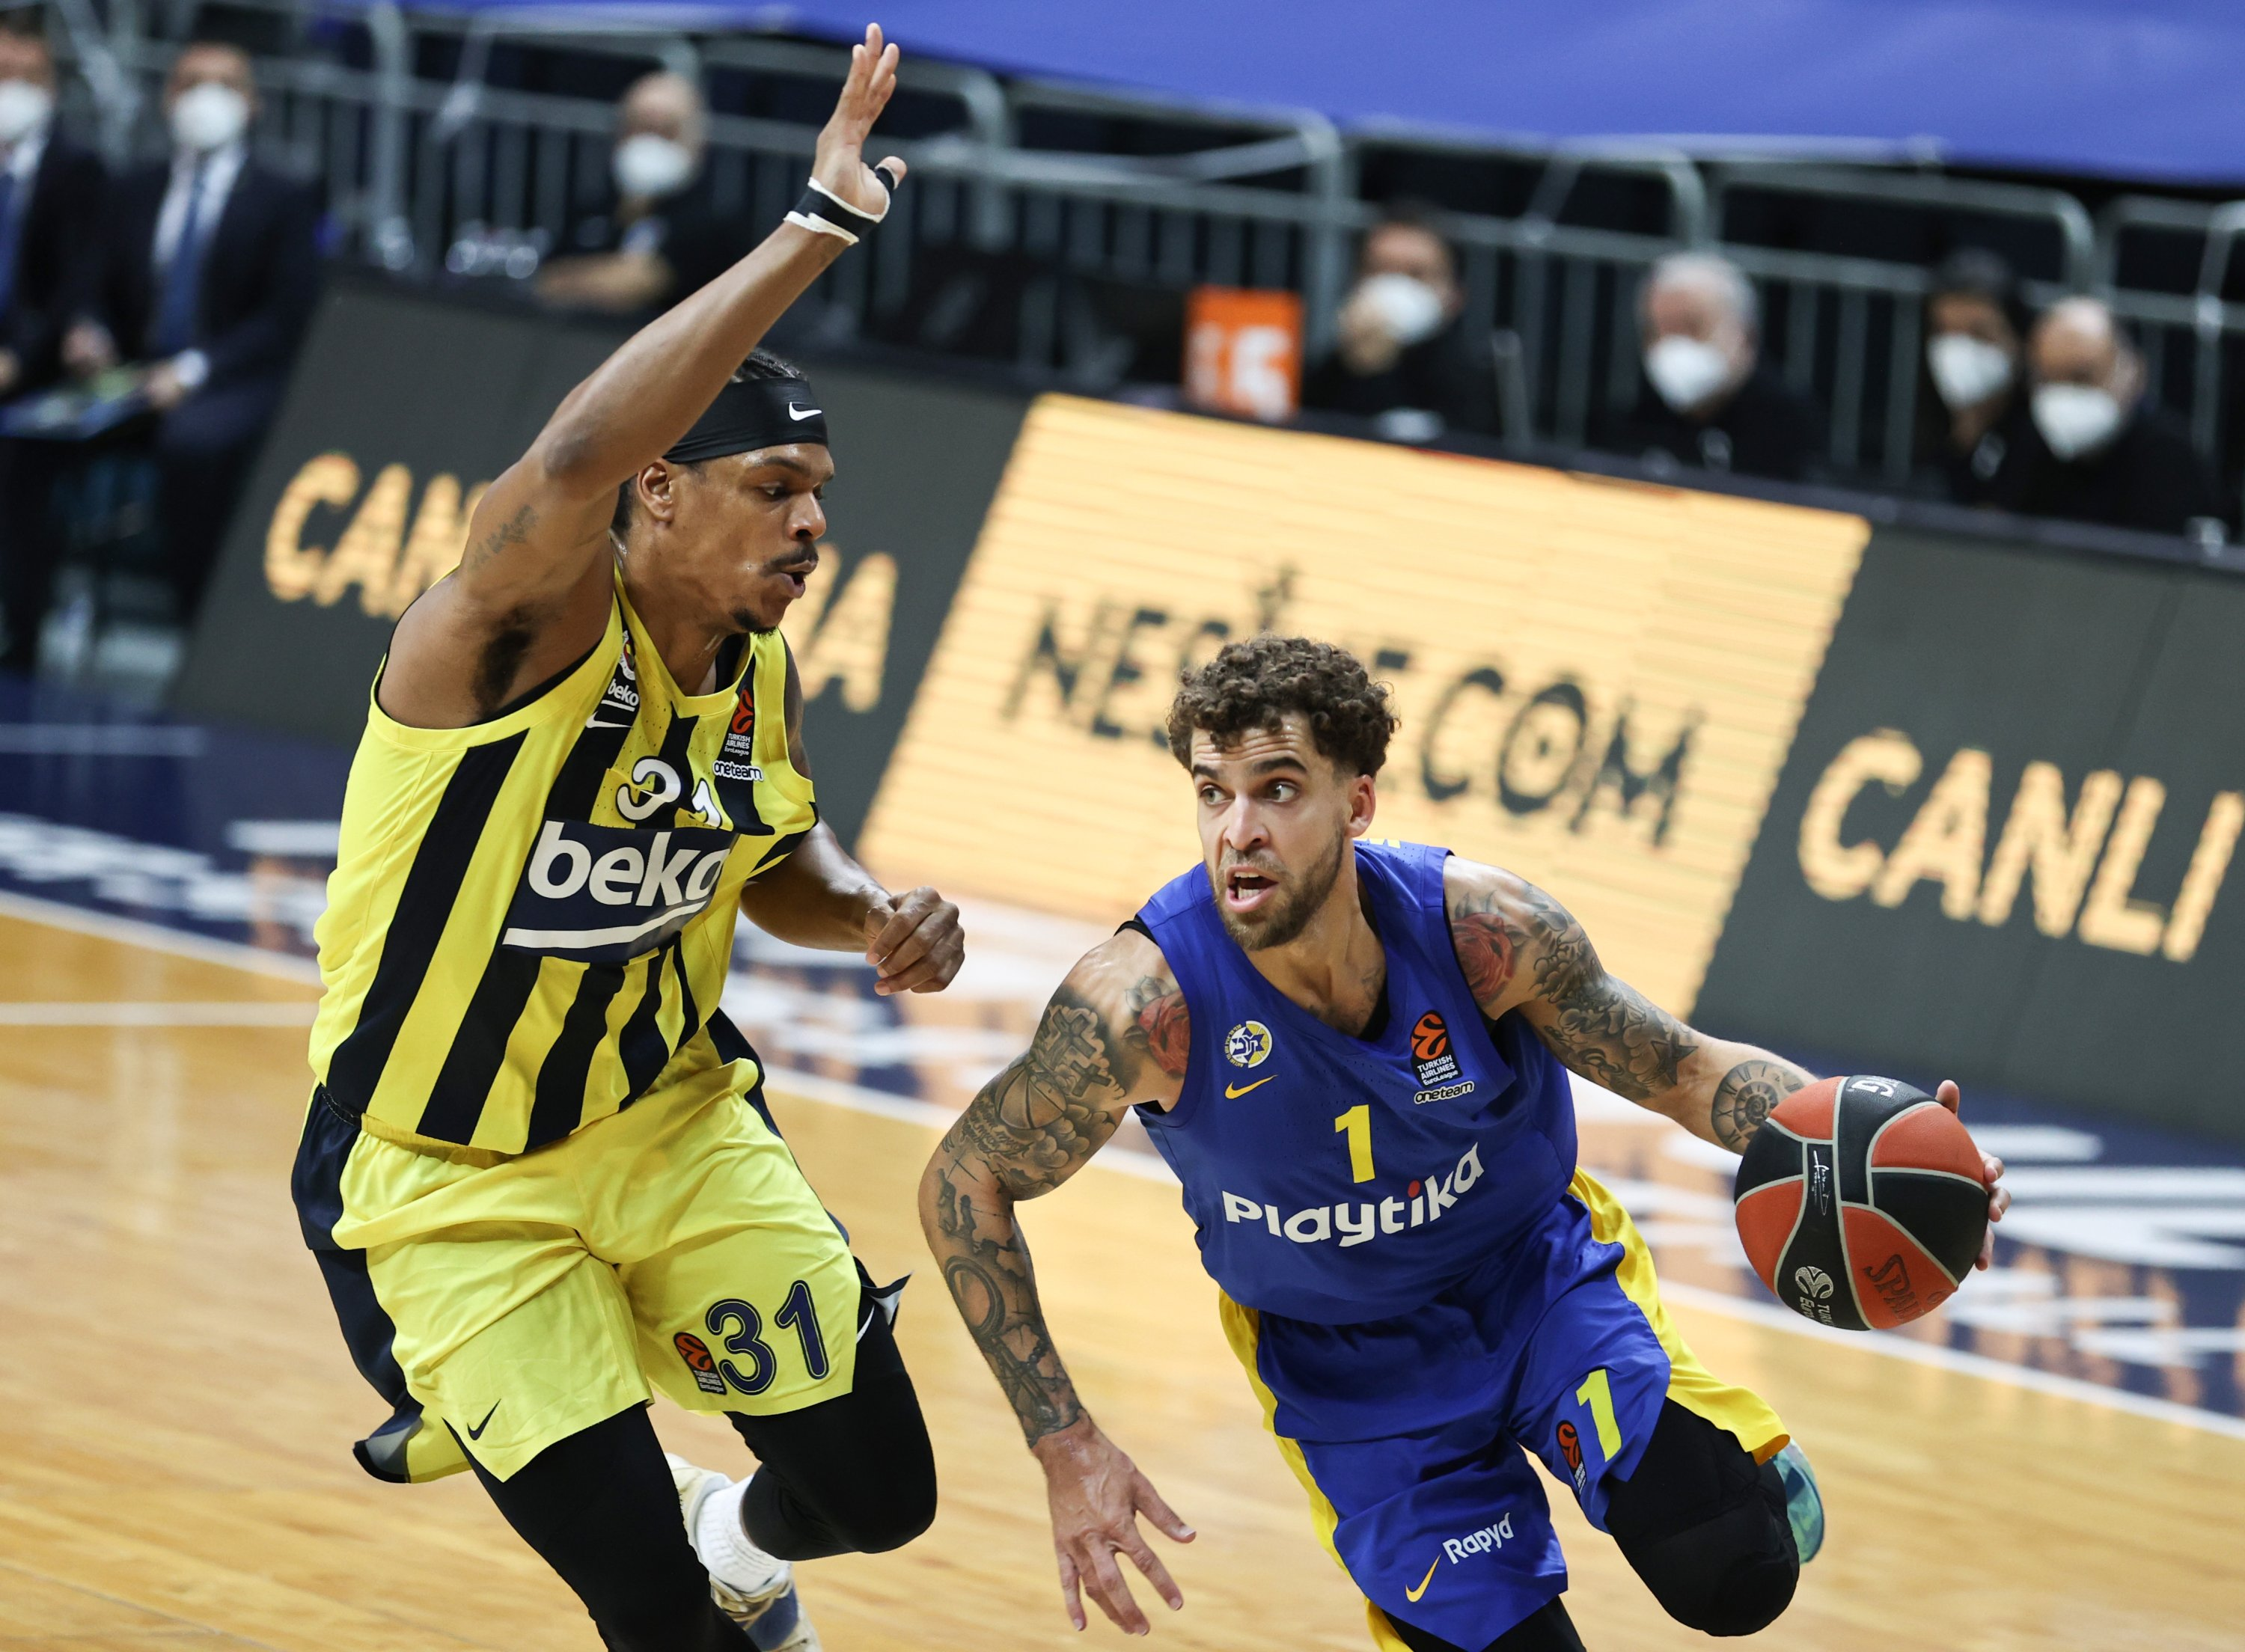 Fenerbahç's small forward Jarell Eddie (L) tries to block Maccabi Tel Aviv's Scottie Wilbekin in a THY EuropeaLeague tie, Ülker Sports Hall, Istanbul, Turkey, Jan. 26, 2021. (AA Photo)